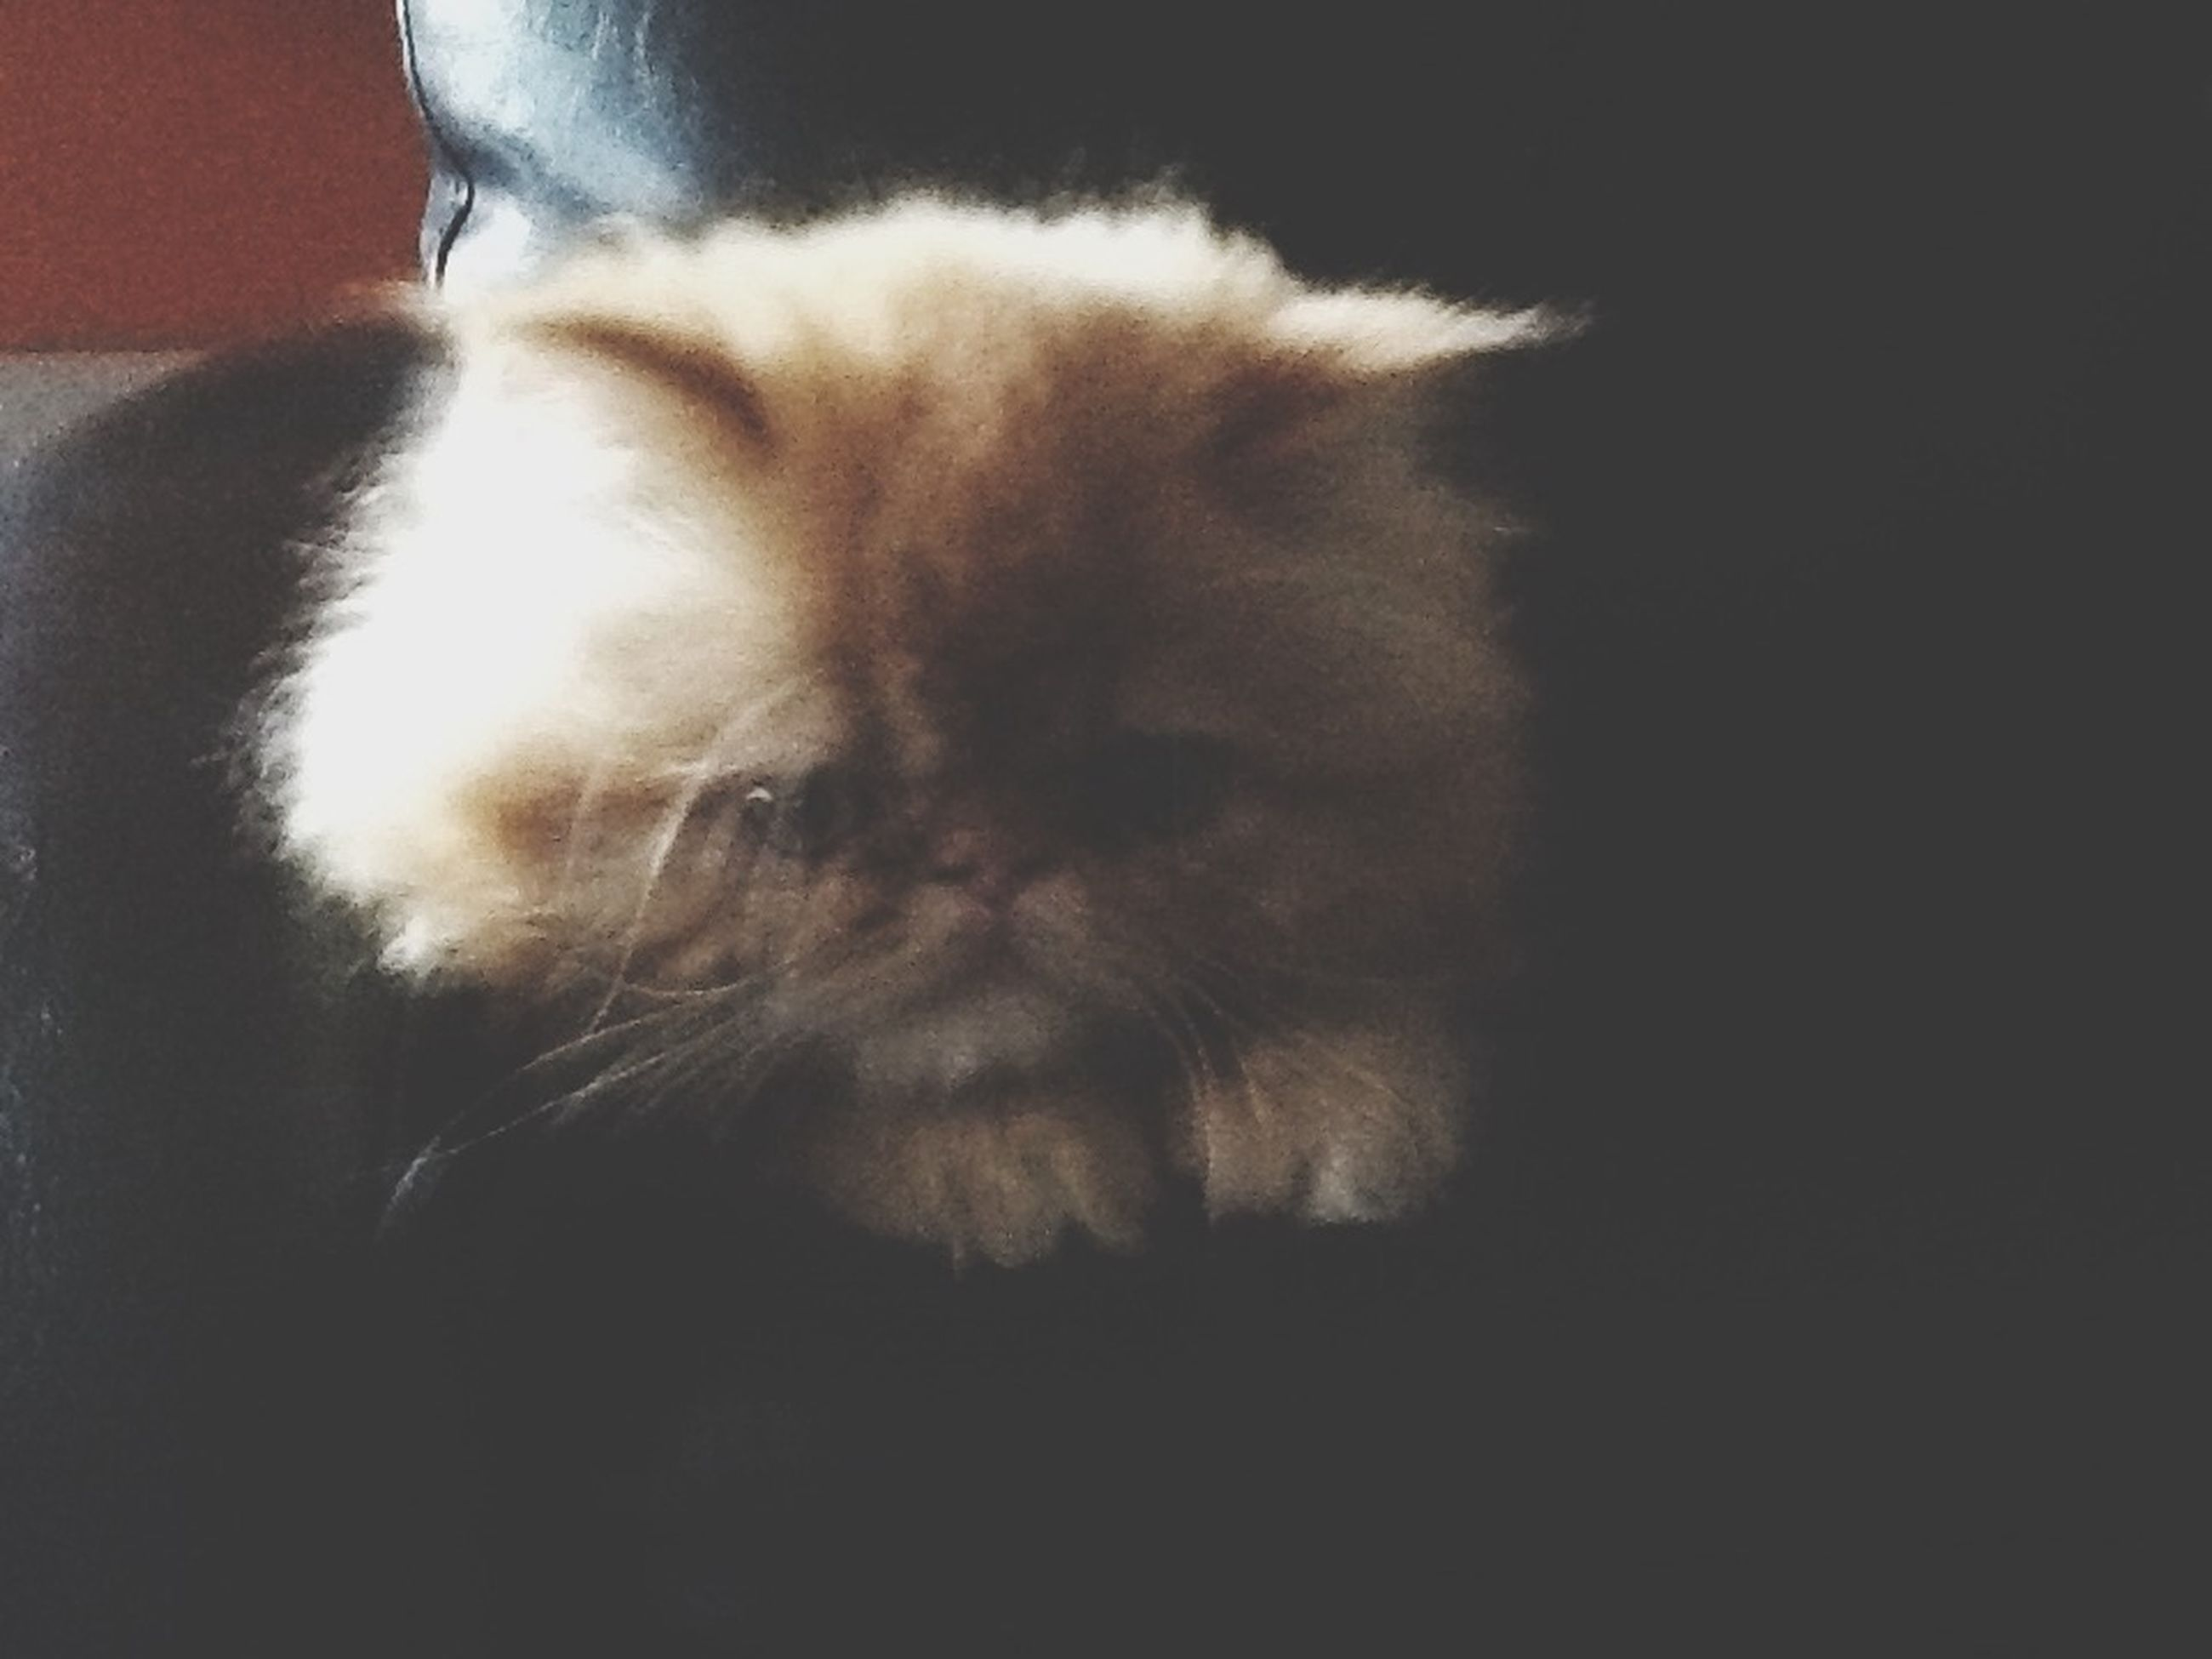 pets, domestic animals, one animal, domestic cat, animal themes, indoors, cat, mammal, feline, whisker, relaxation, close-up, home interior, resting, lying down, sleeping, animal head, home, no people, looking away